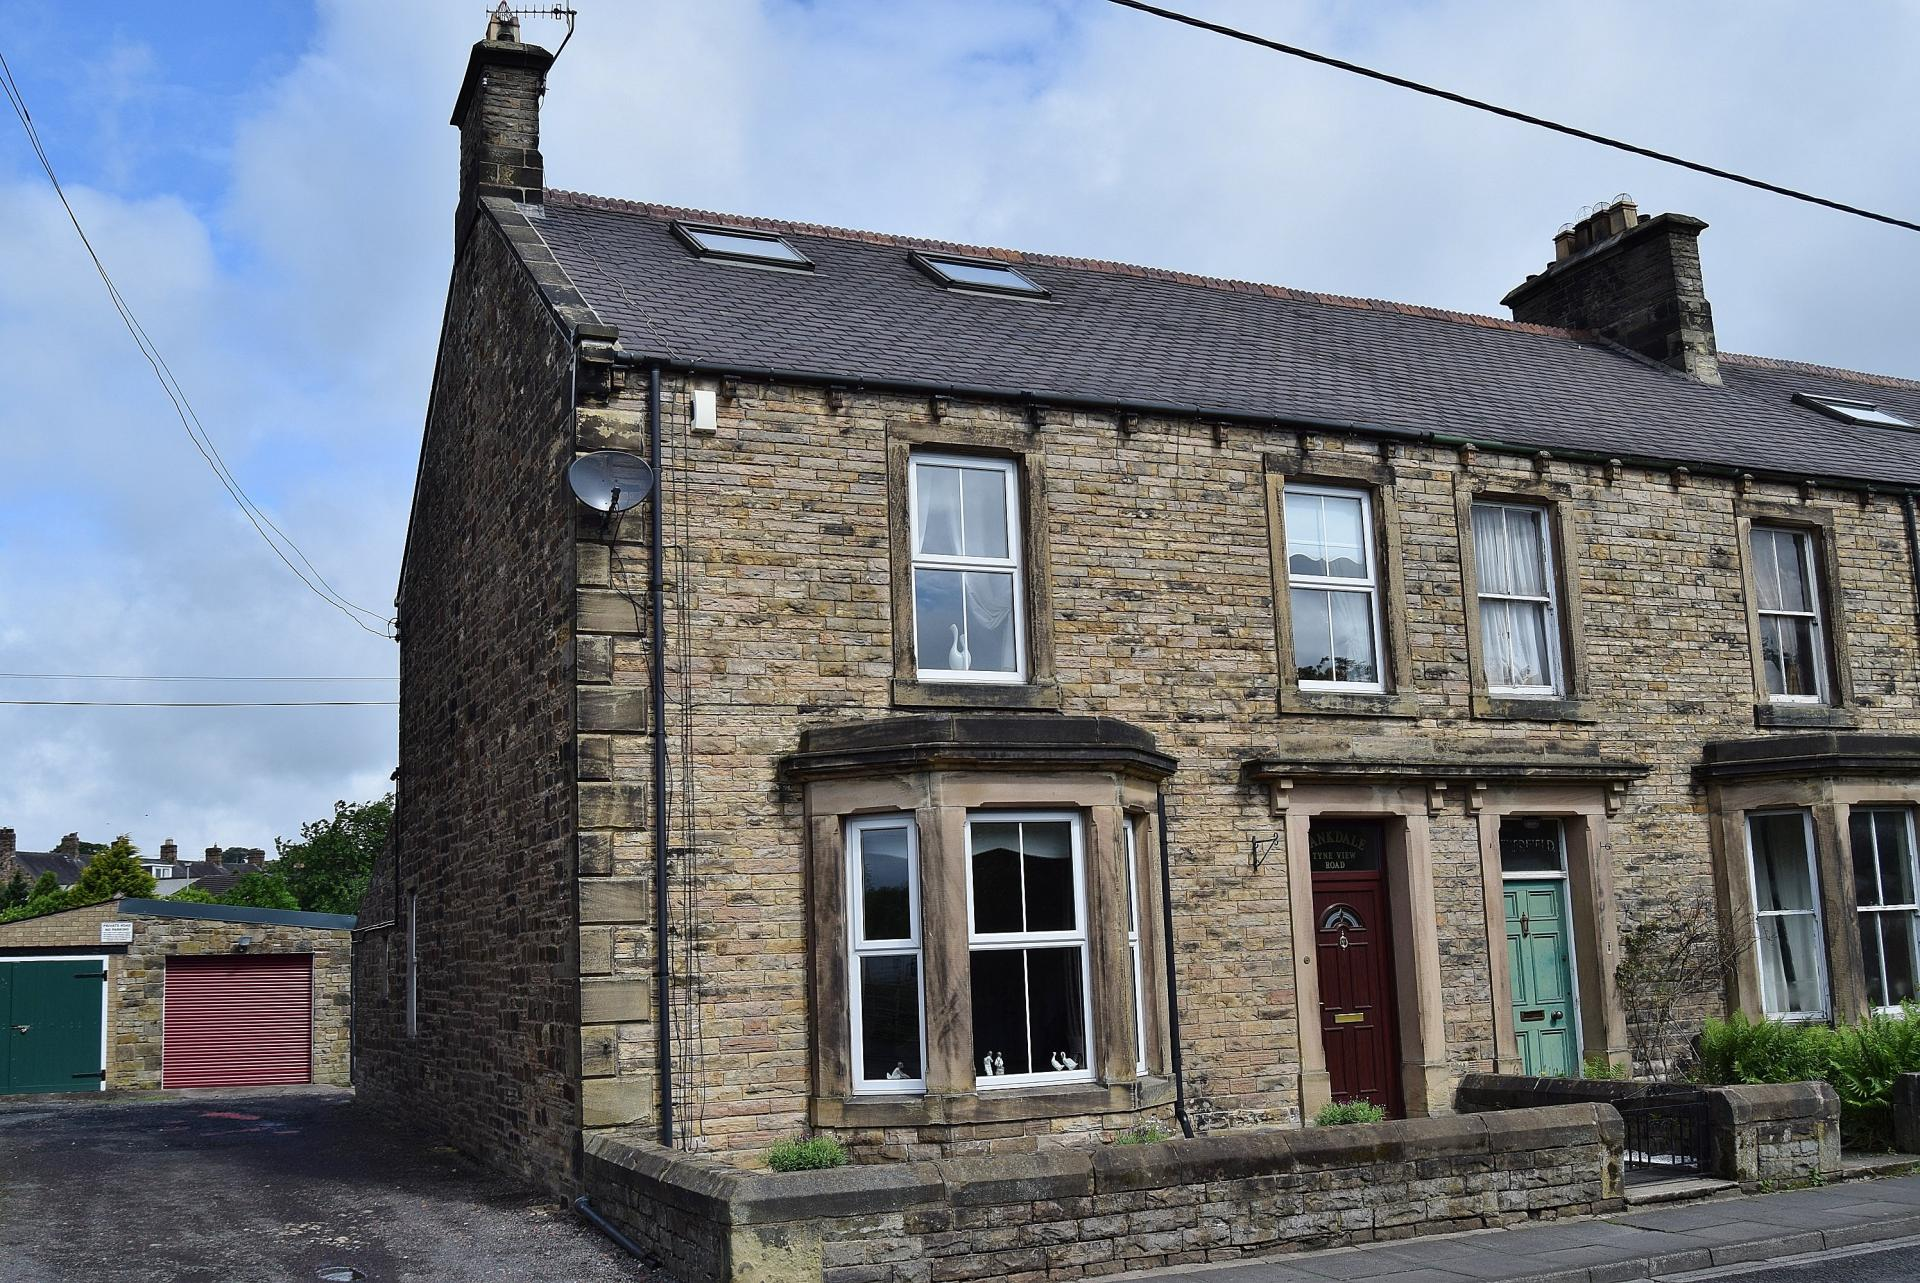 4 Bedrooms Terraced House for sale in Tyne View Road, Haltwhistle